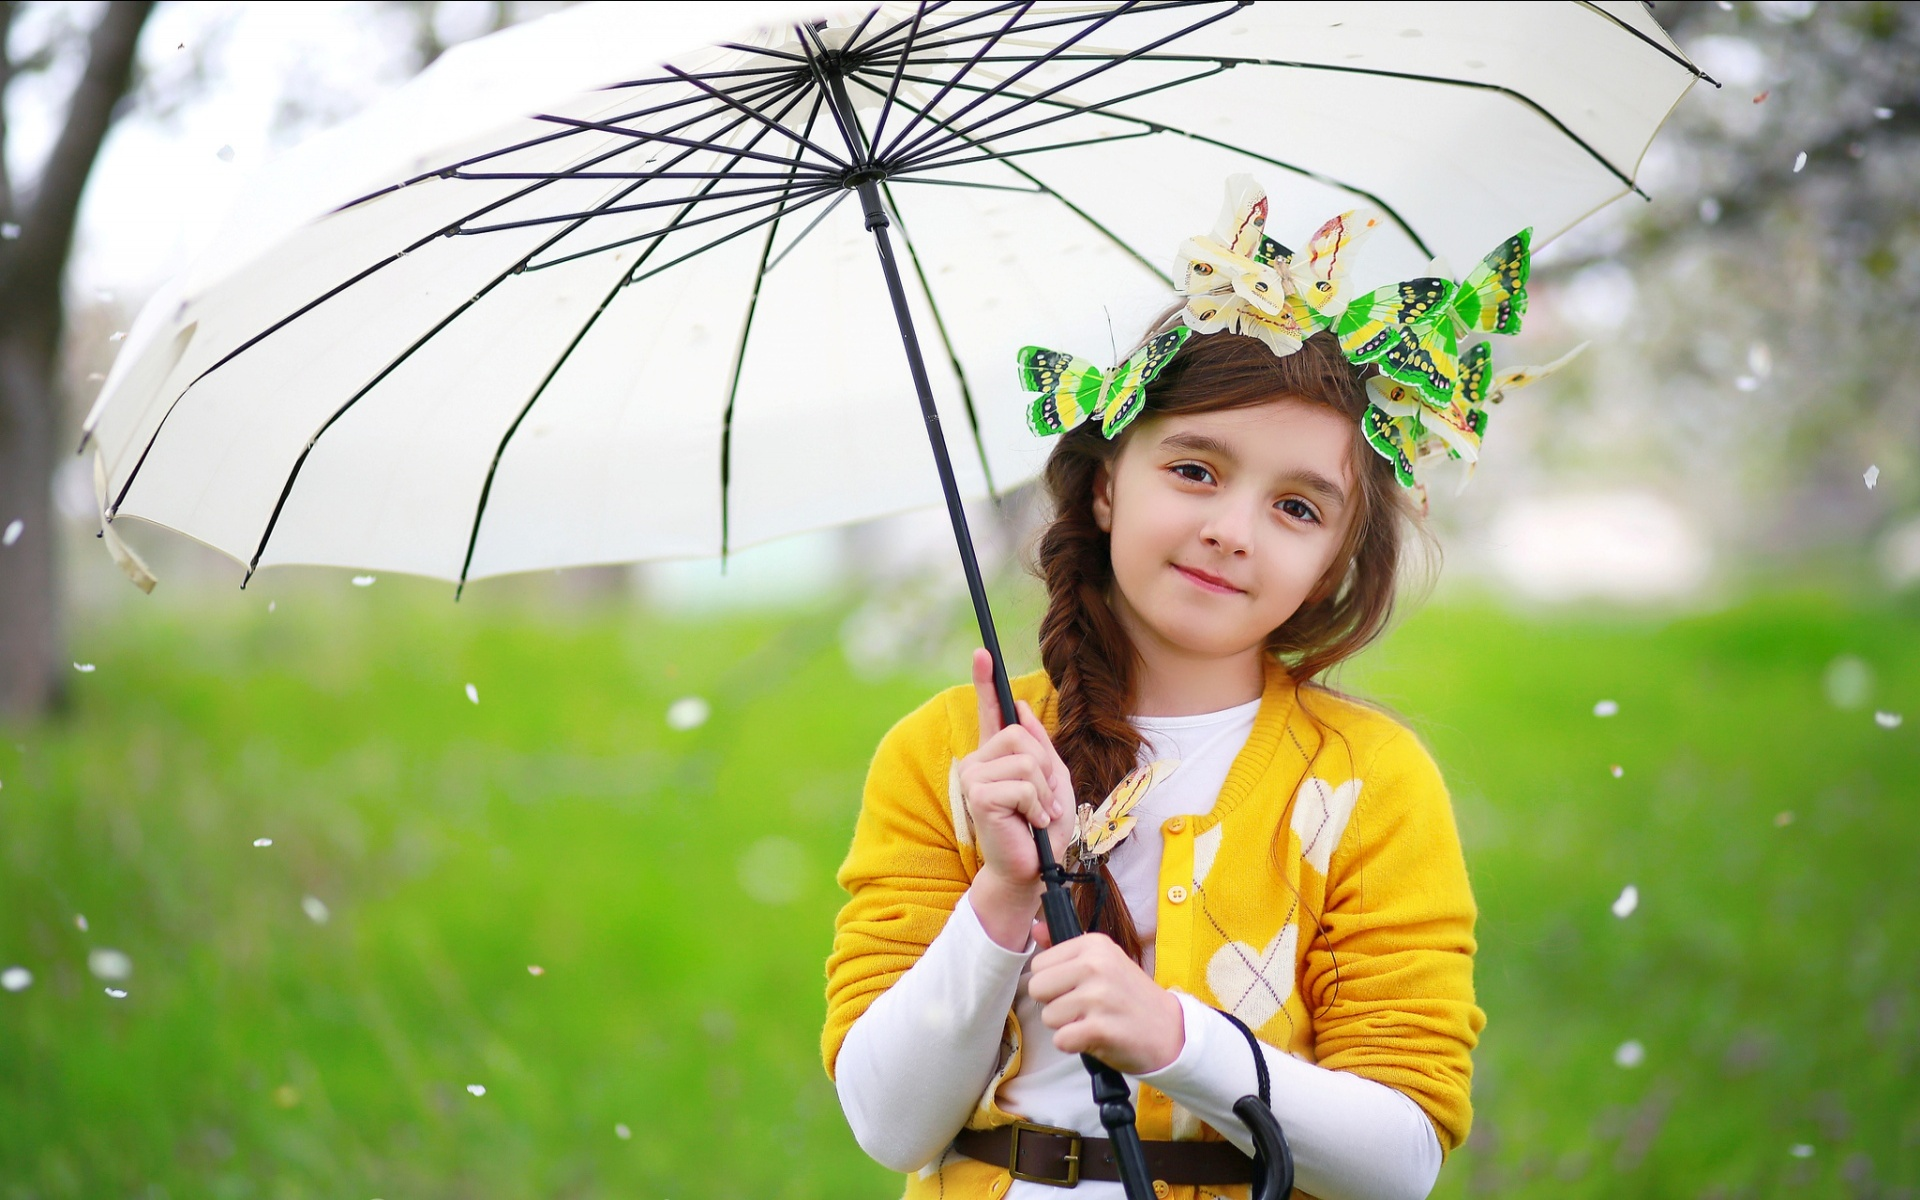 cute baby with white umbrella wallpapers - 1920x1200 - 584461